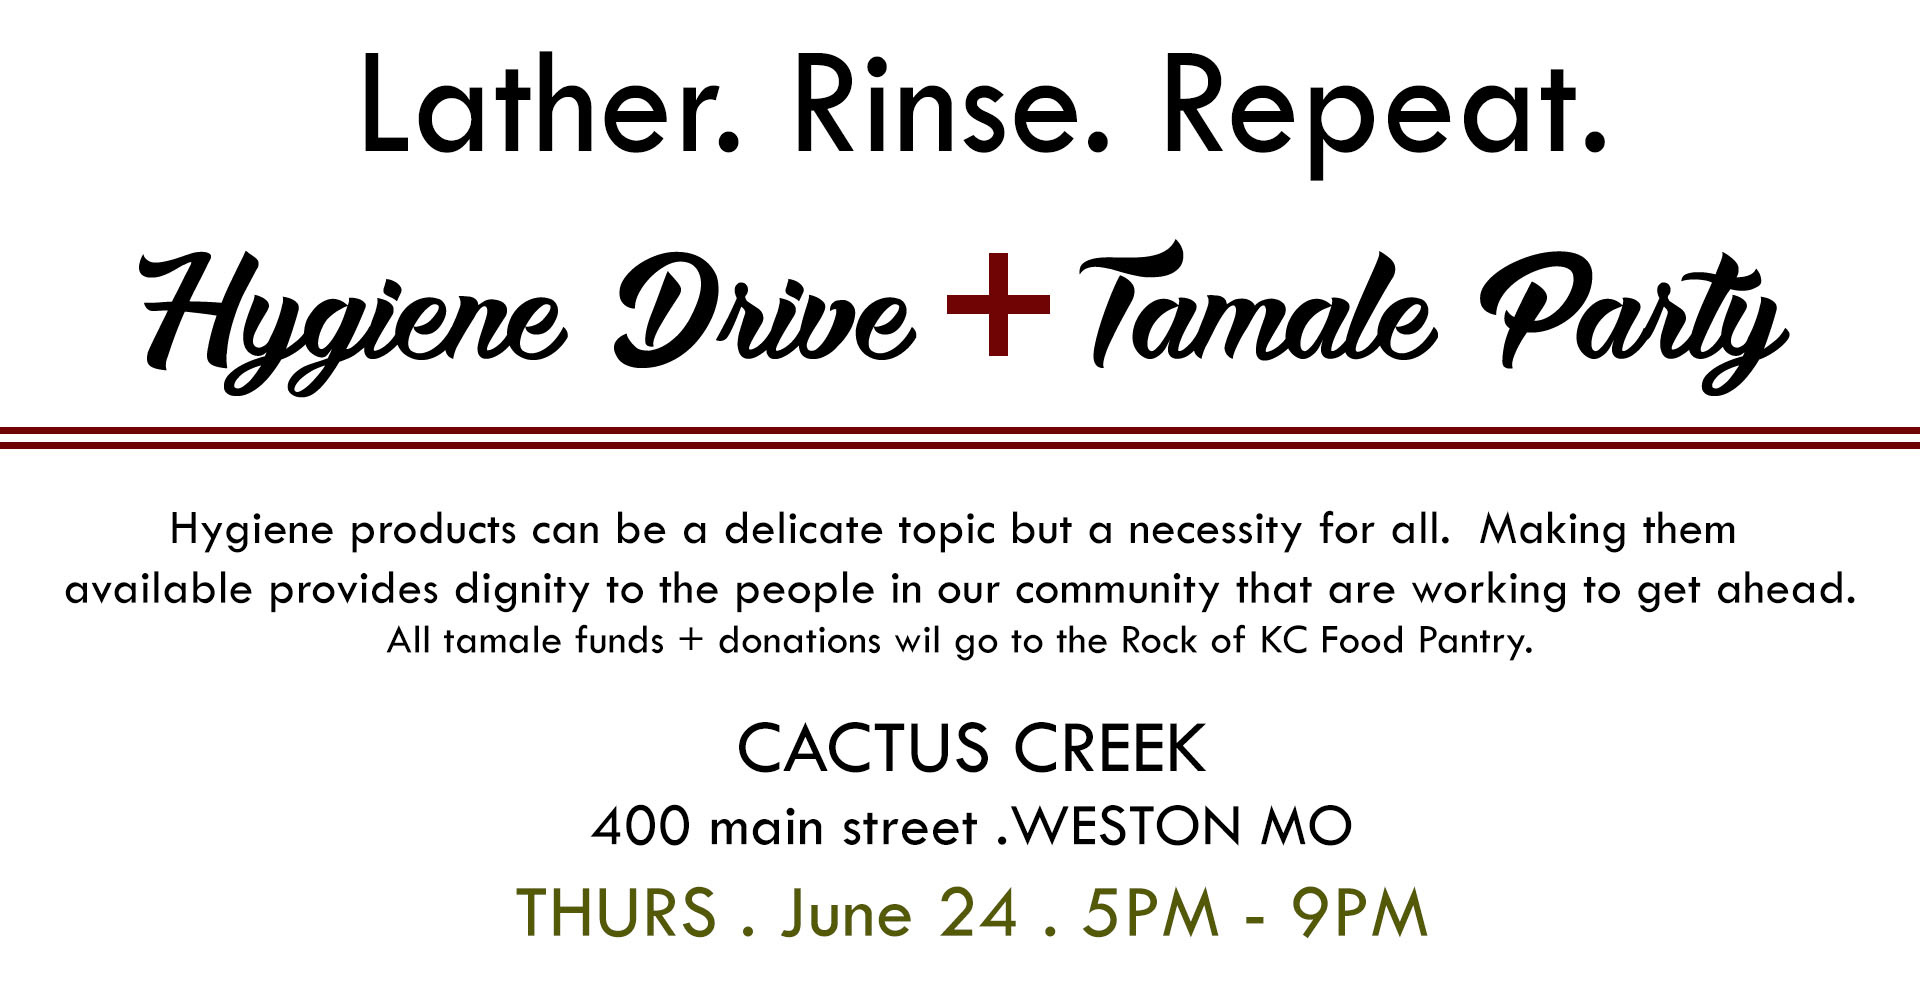 Hygiene Drive + Tamale Party